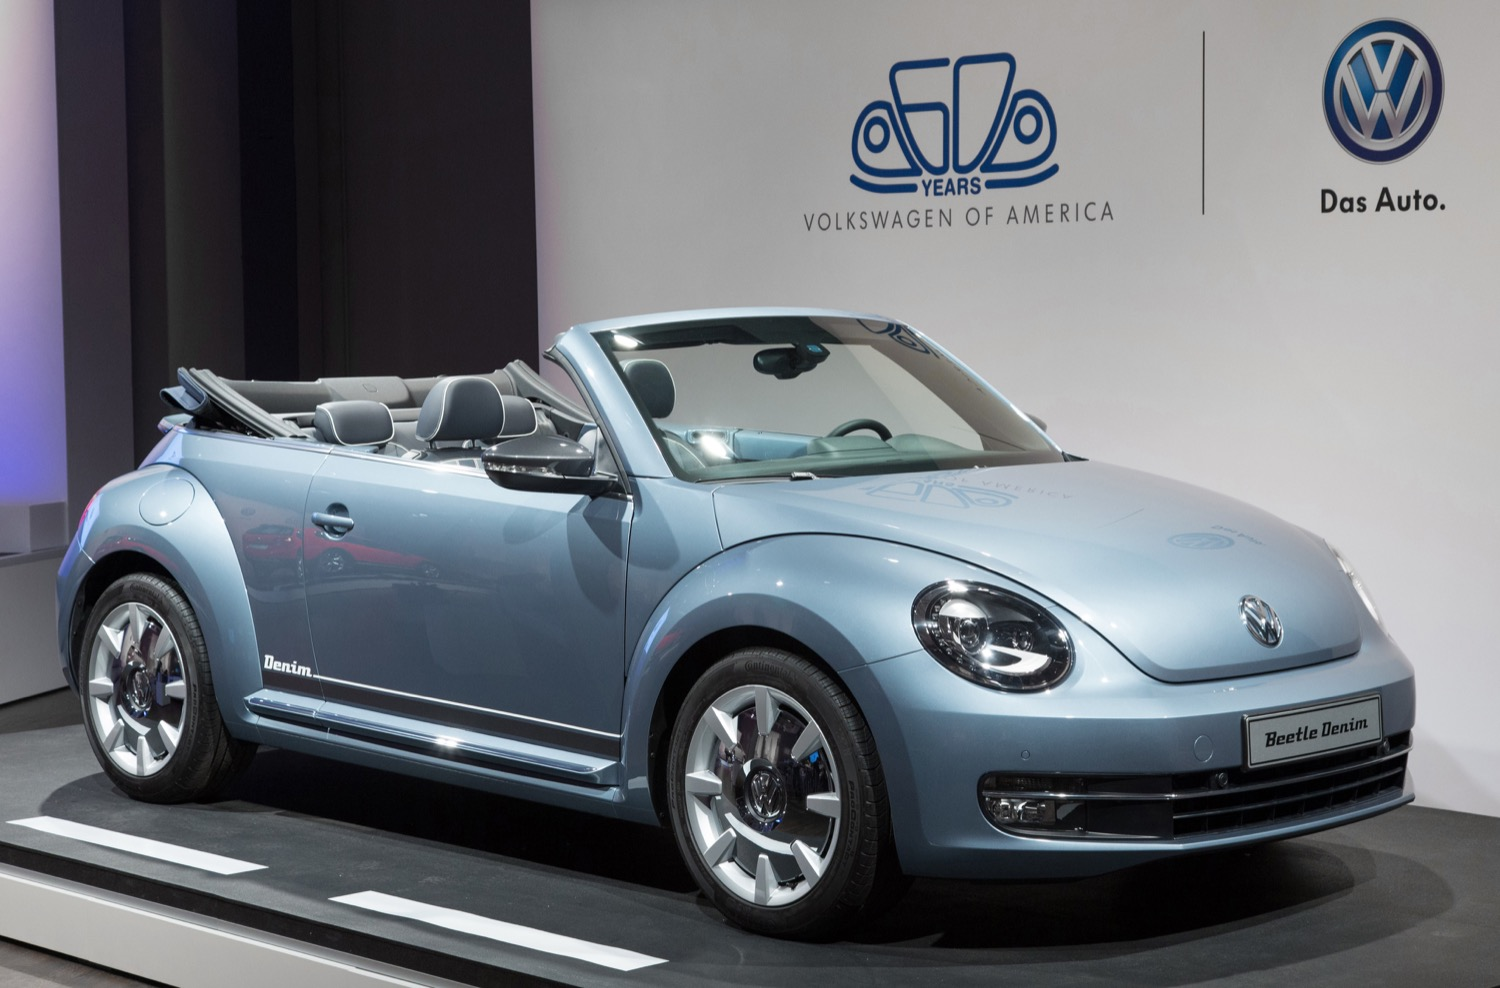 Volkswagen beetle convertible denim concept 02 new york international auto show 2015